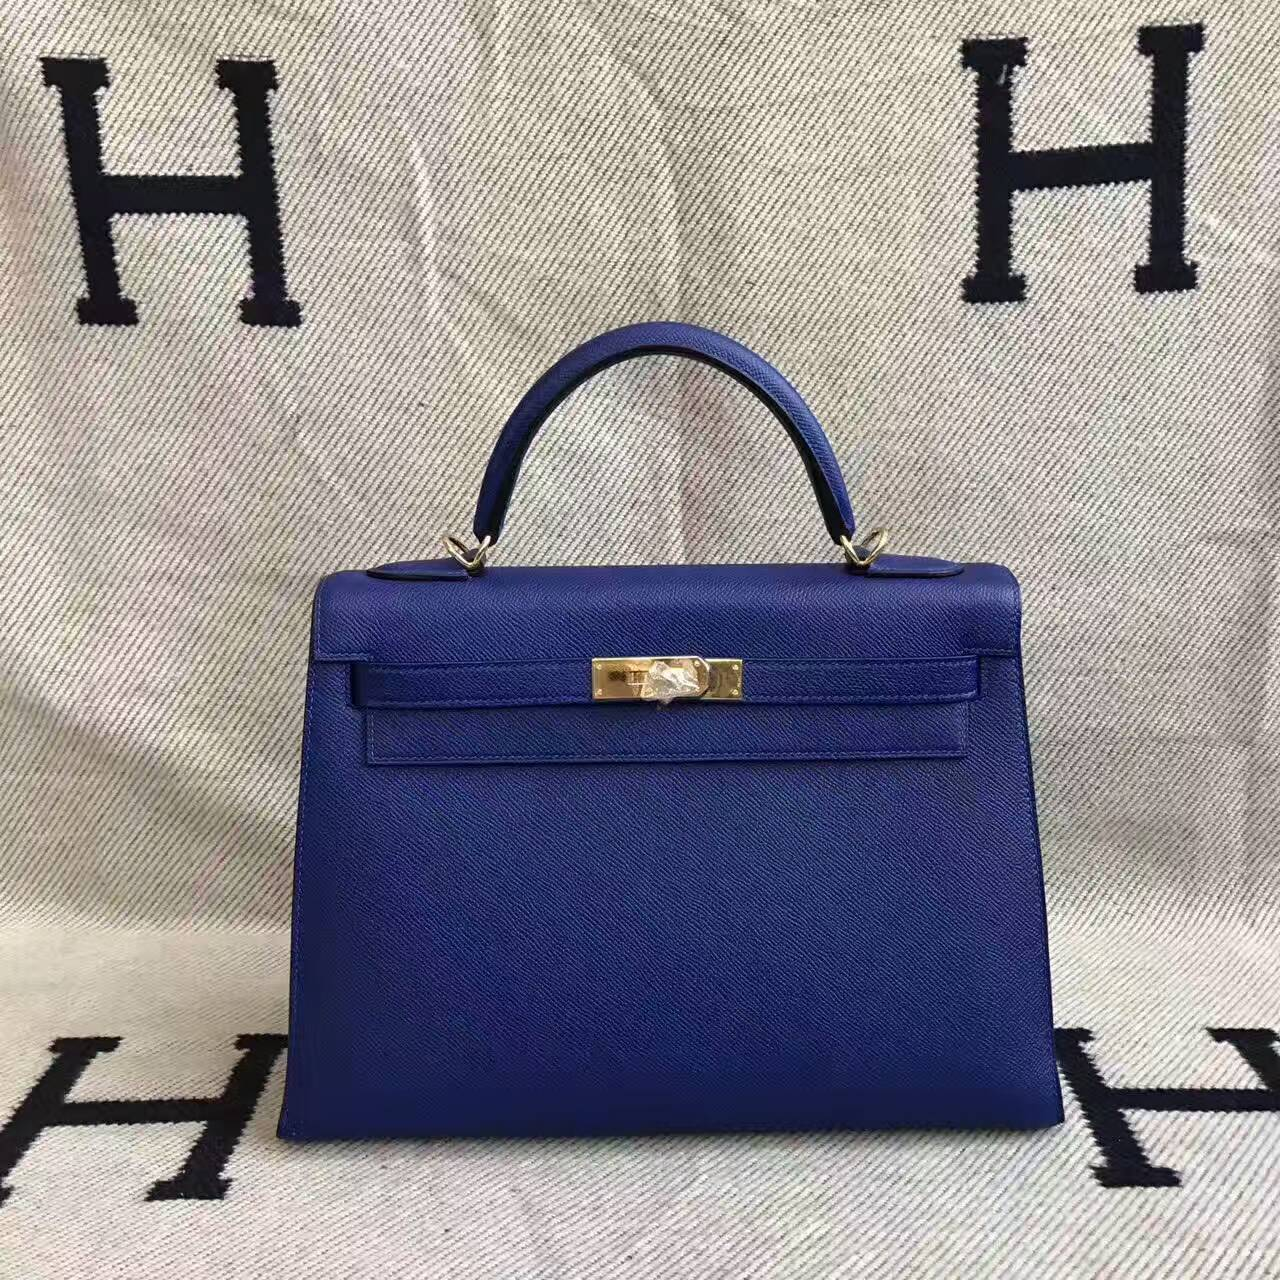 Women's Bag Hermes Kelly Bag 32CM in 7T Blue Electric Epsom Leather